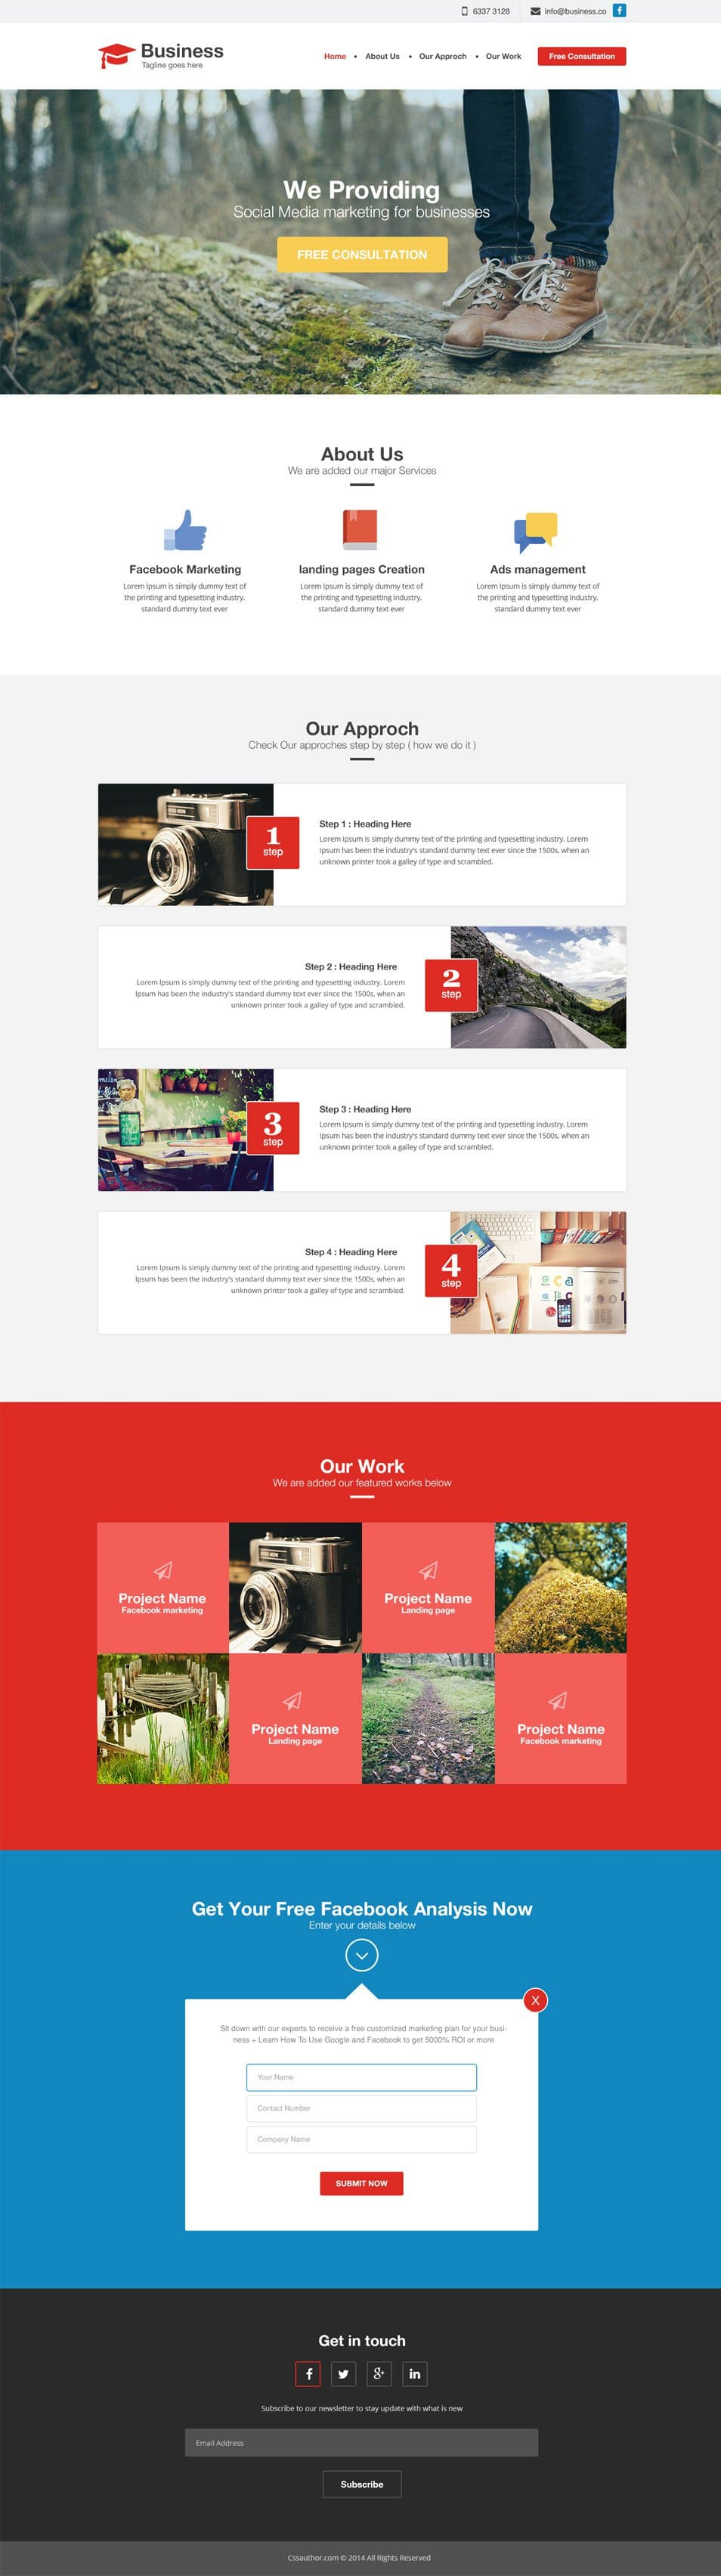 Free corporate and business web templates psd agency business website template psd wajeb Choice Image